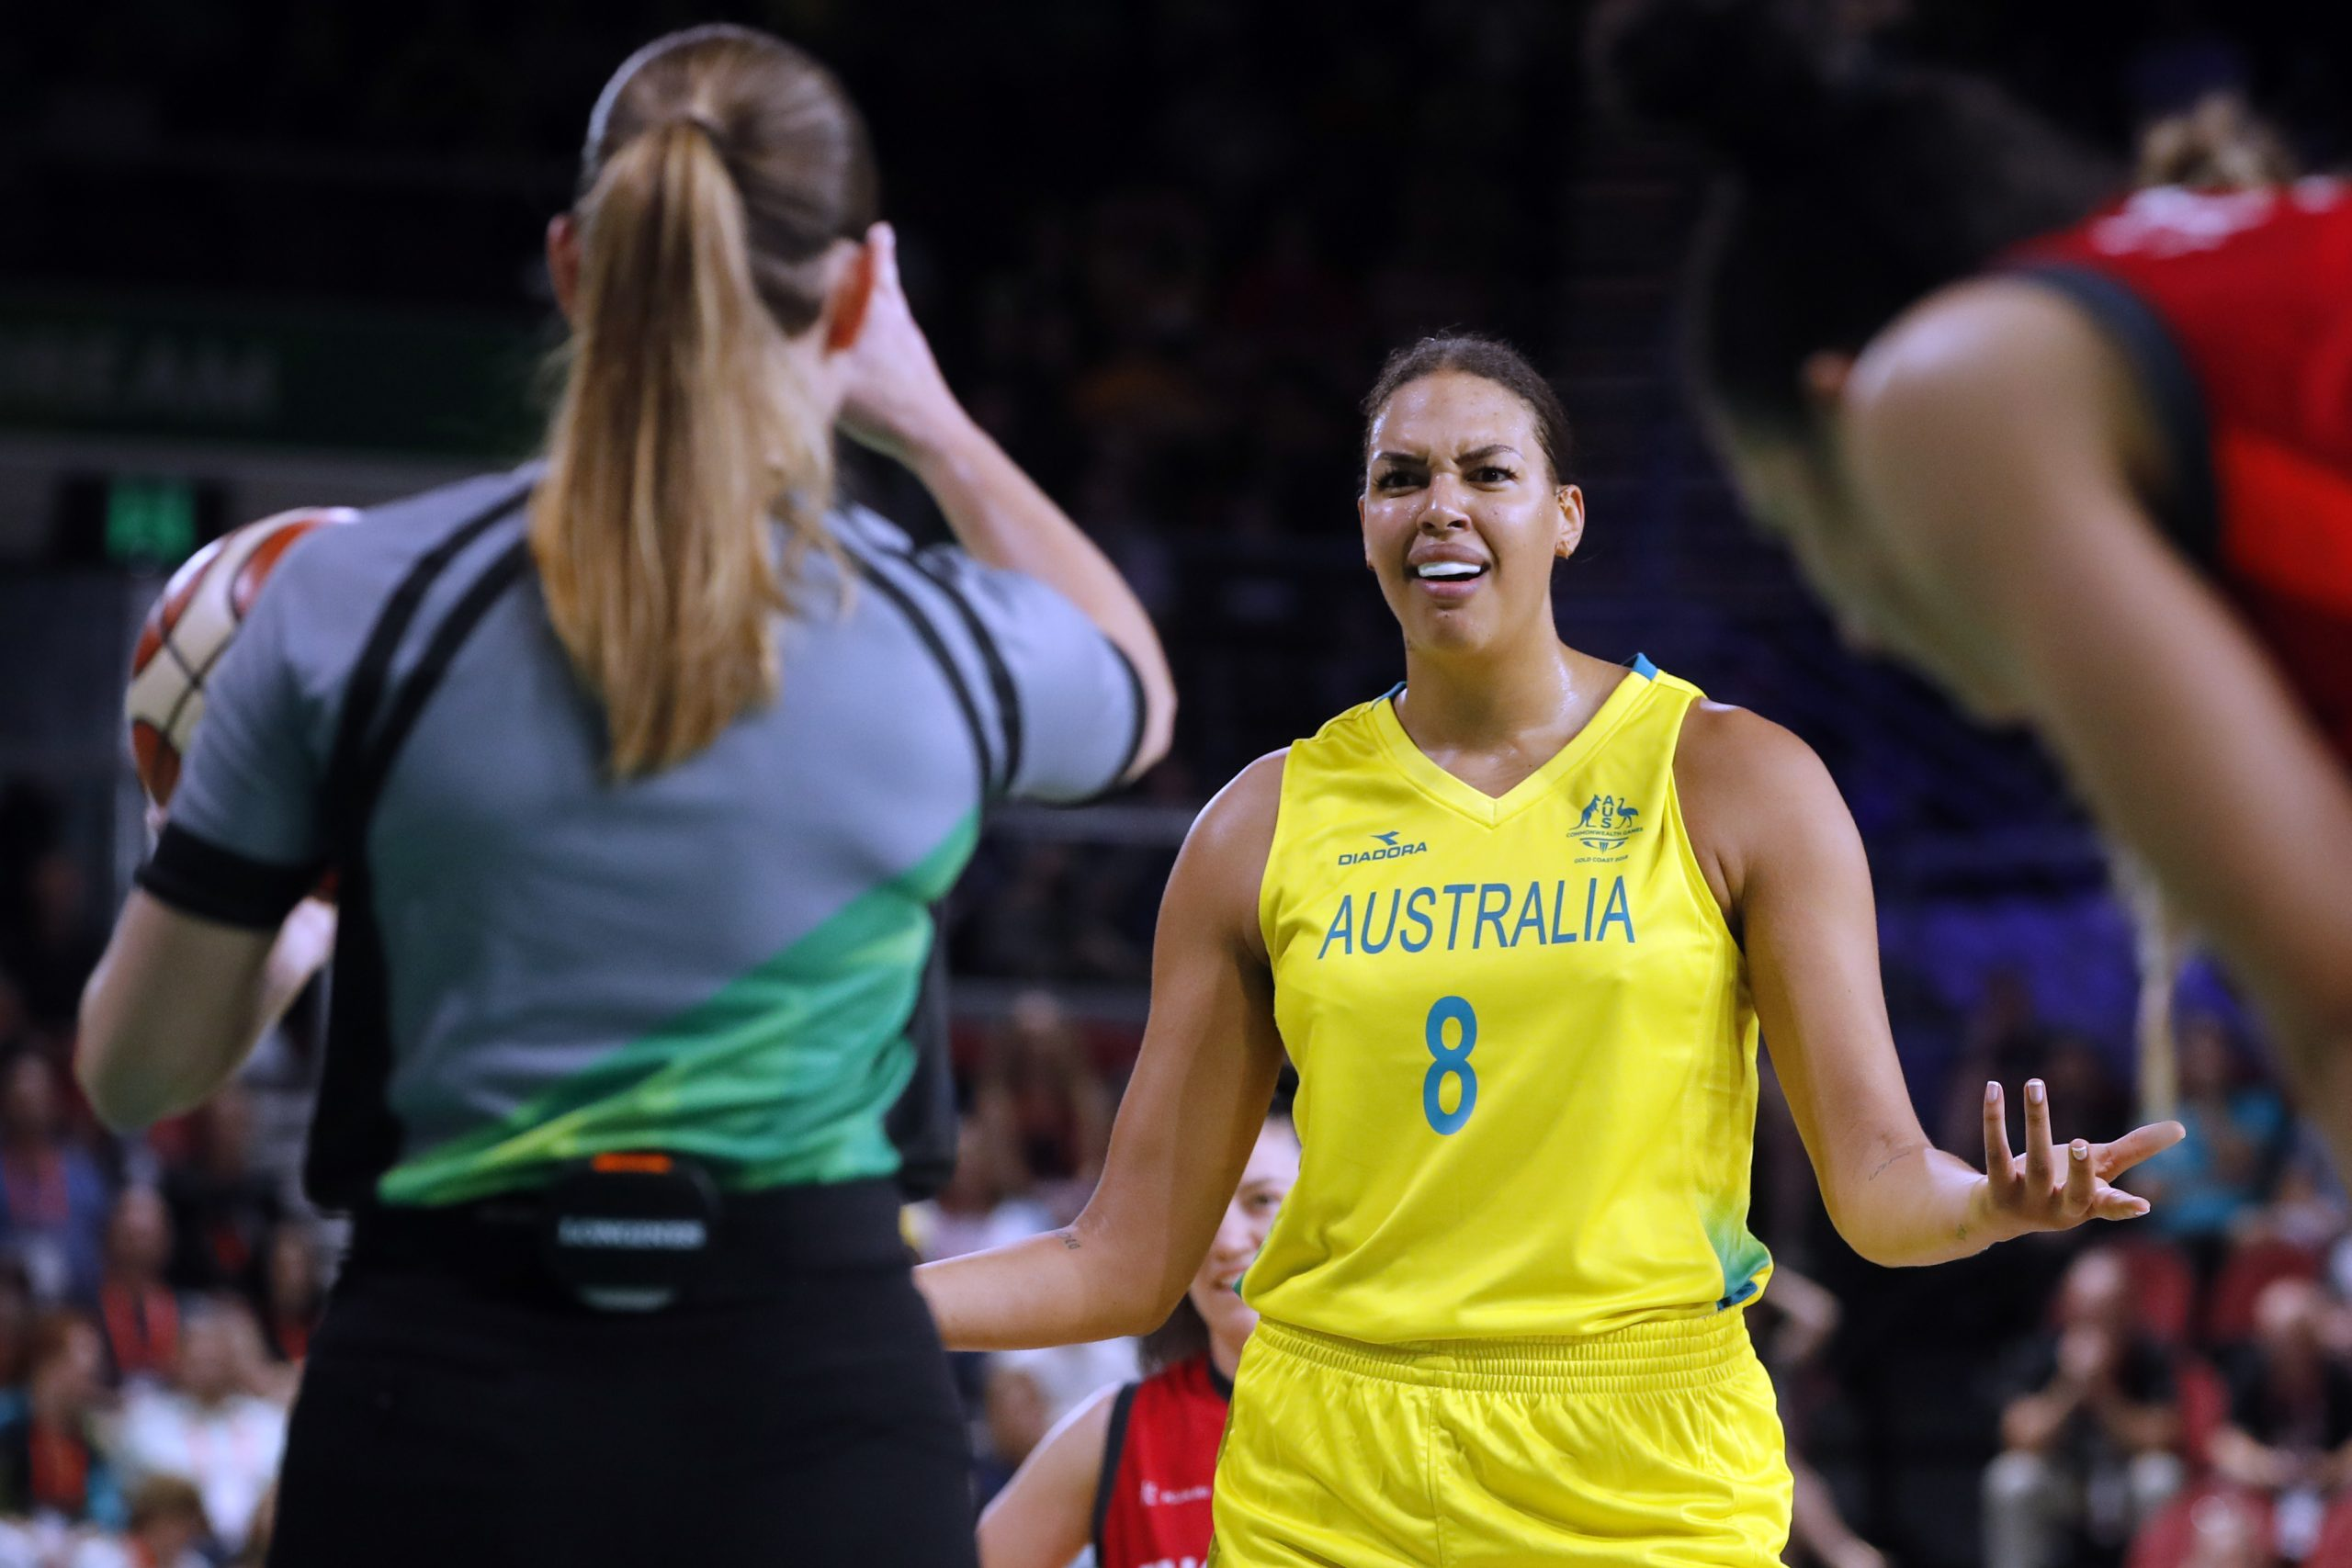 Liz Cambage reacts to a foul call during the Commonwealth games in 2018